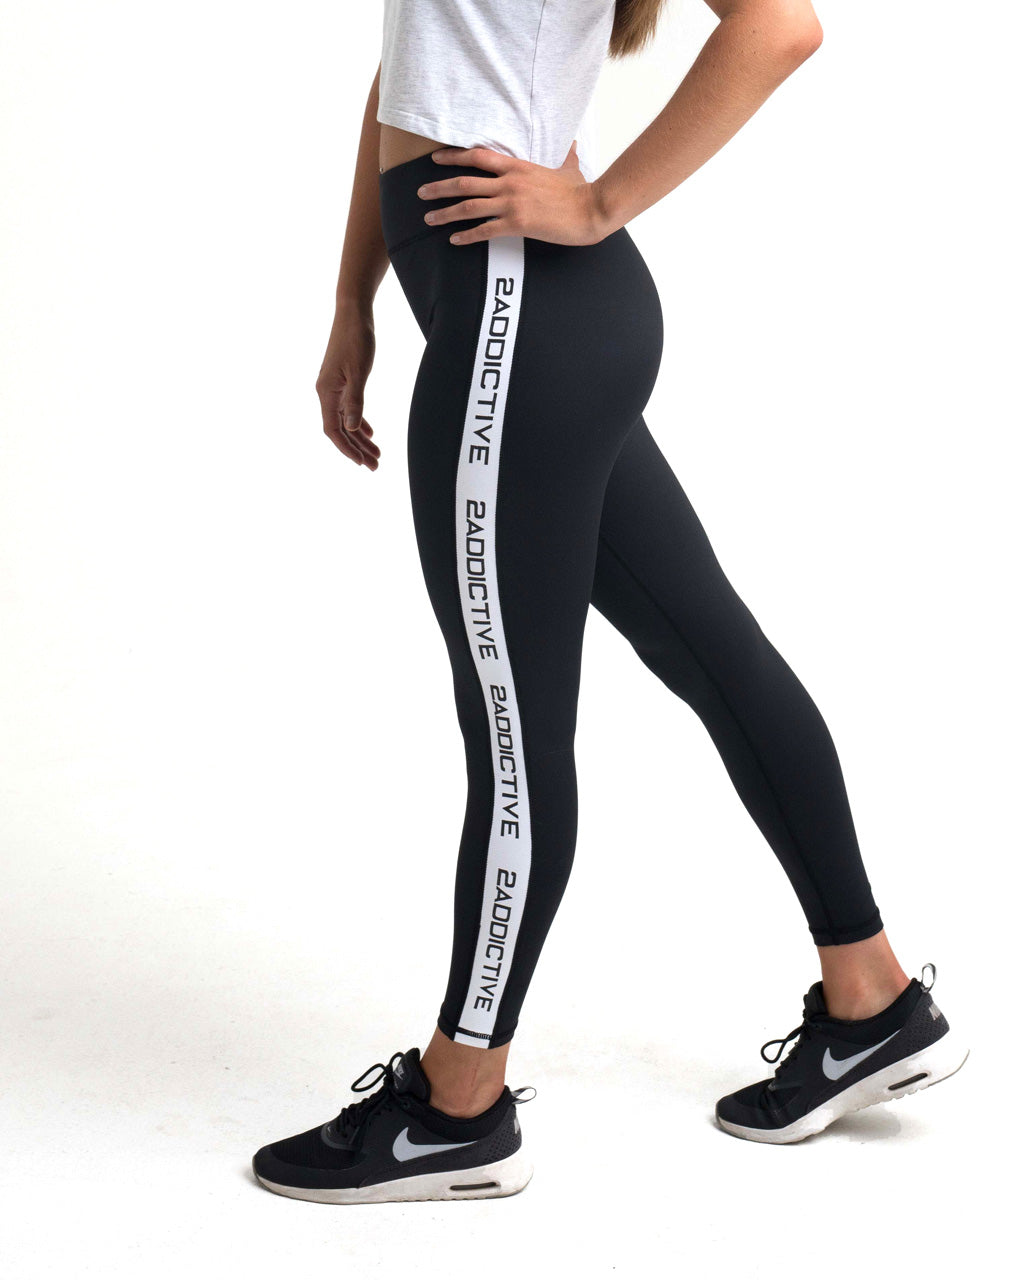 2Addictive Black Luxe Leggings - 2 Addictive